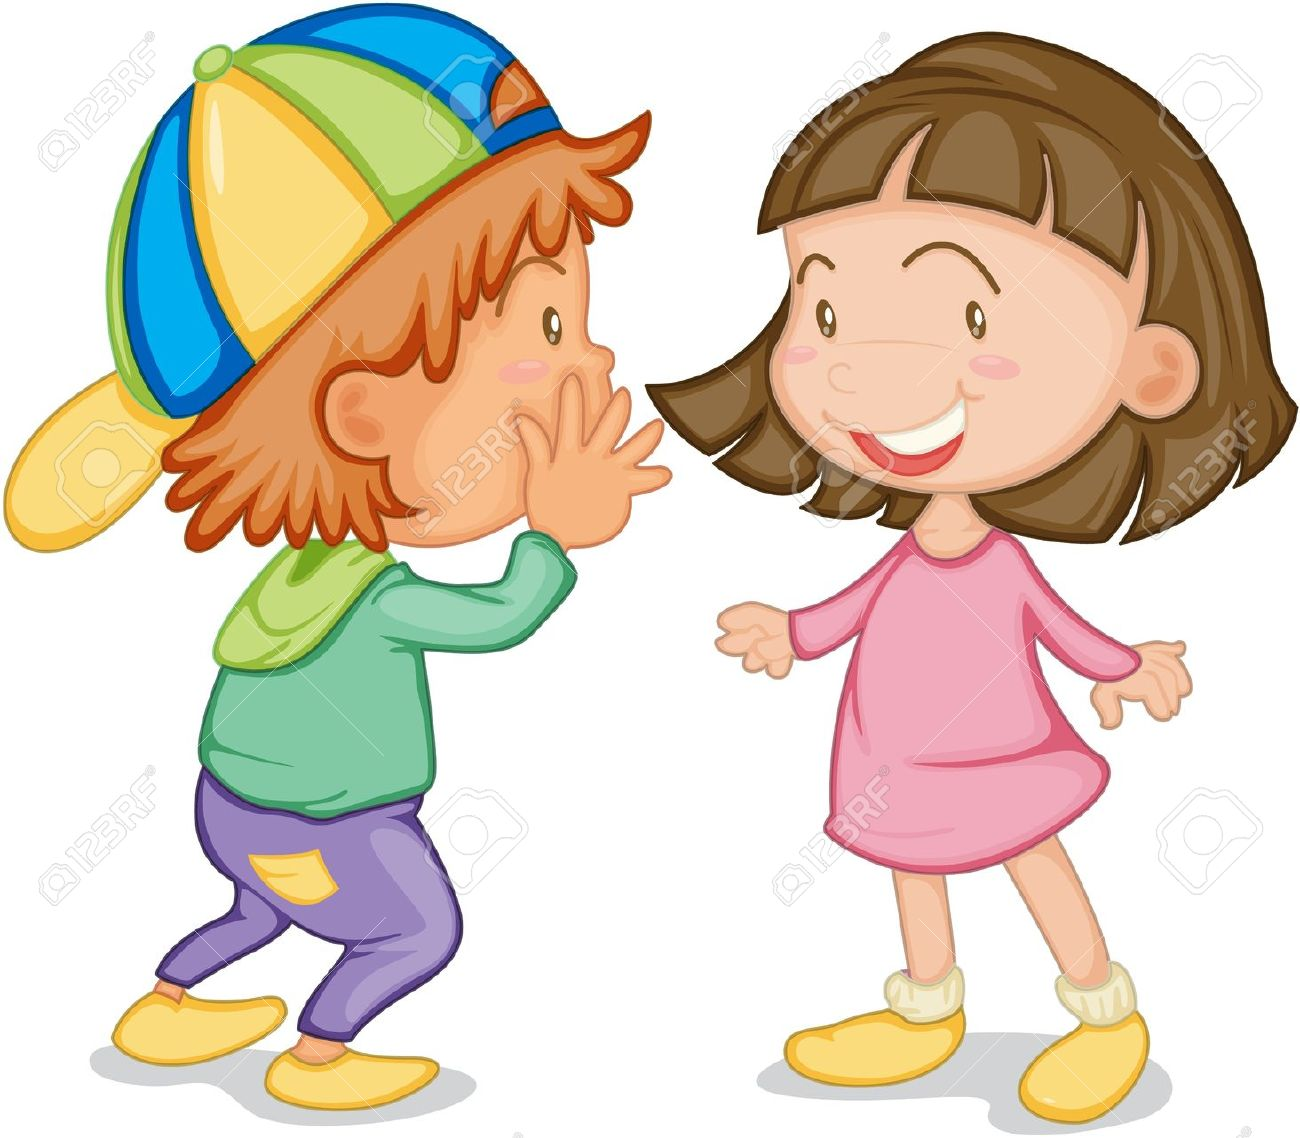 Child Speaking: Illustration .-child speaking: illustration .-3